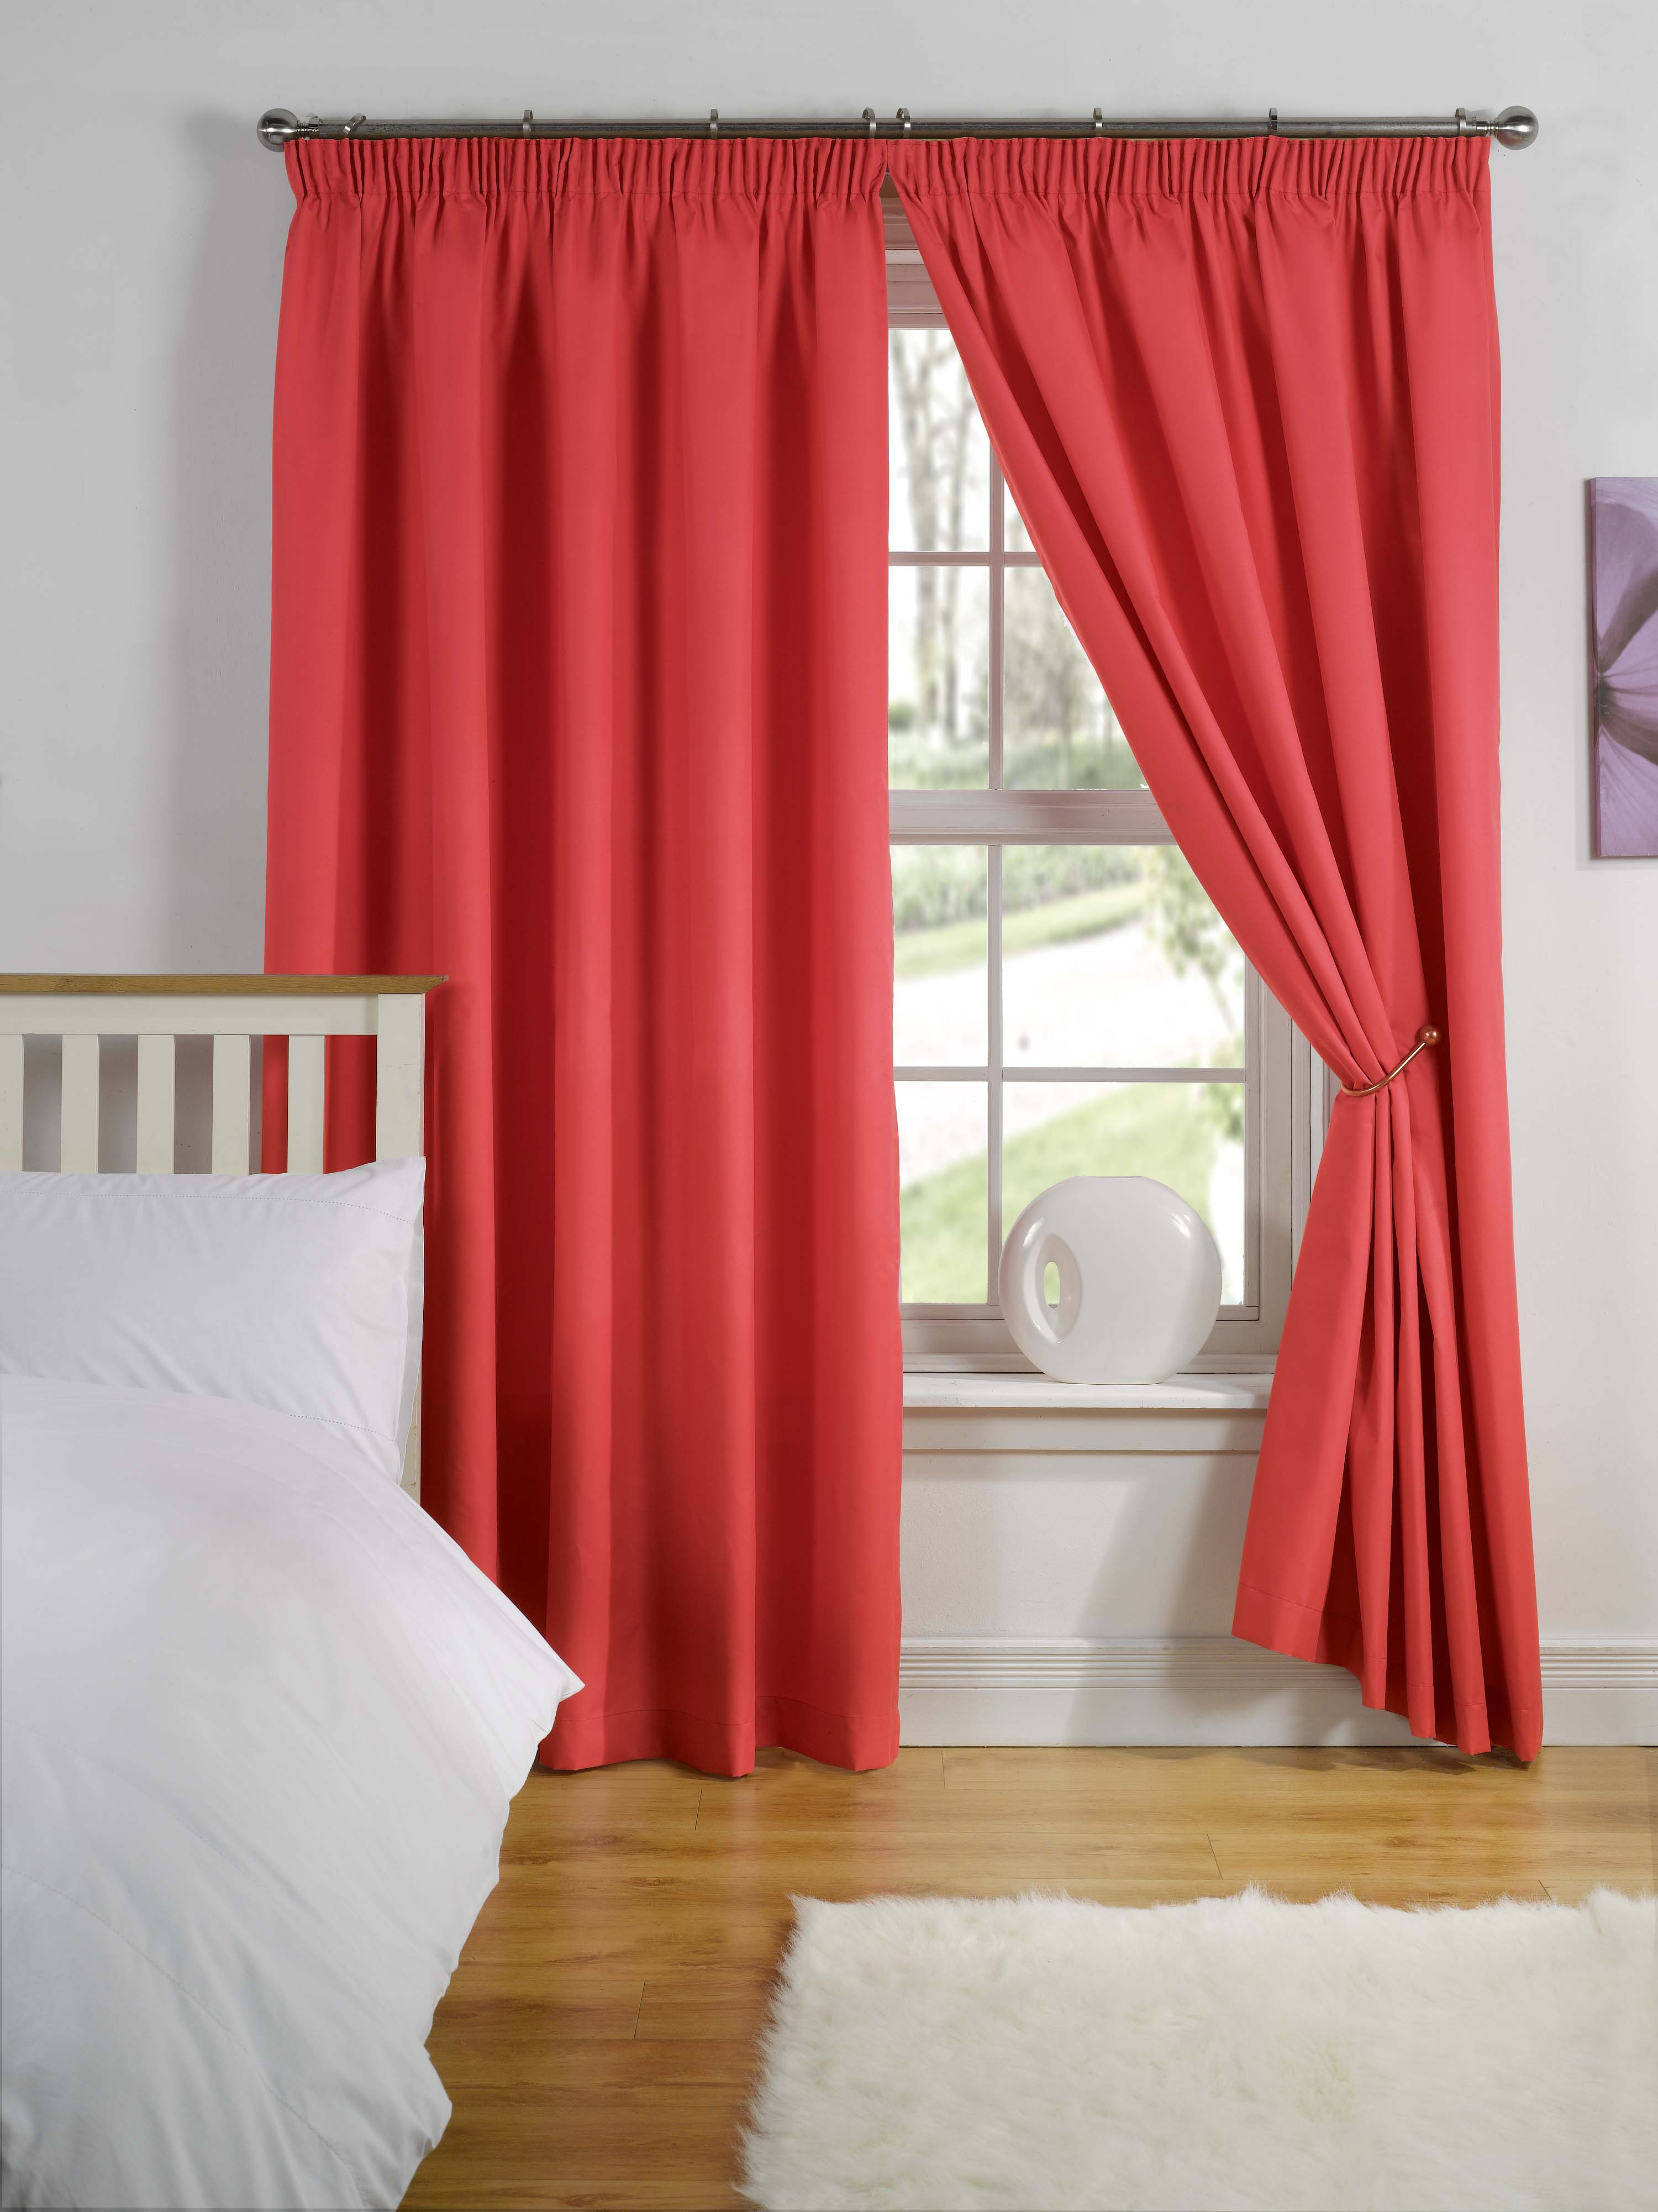 Thermal Backed Ready Made Curtains Lining Tape Top Range Of - Ready made curtains red